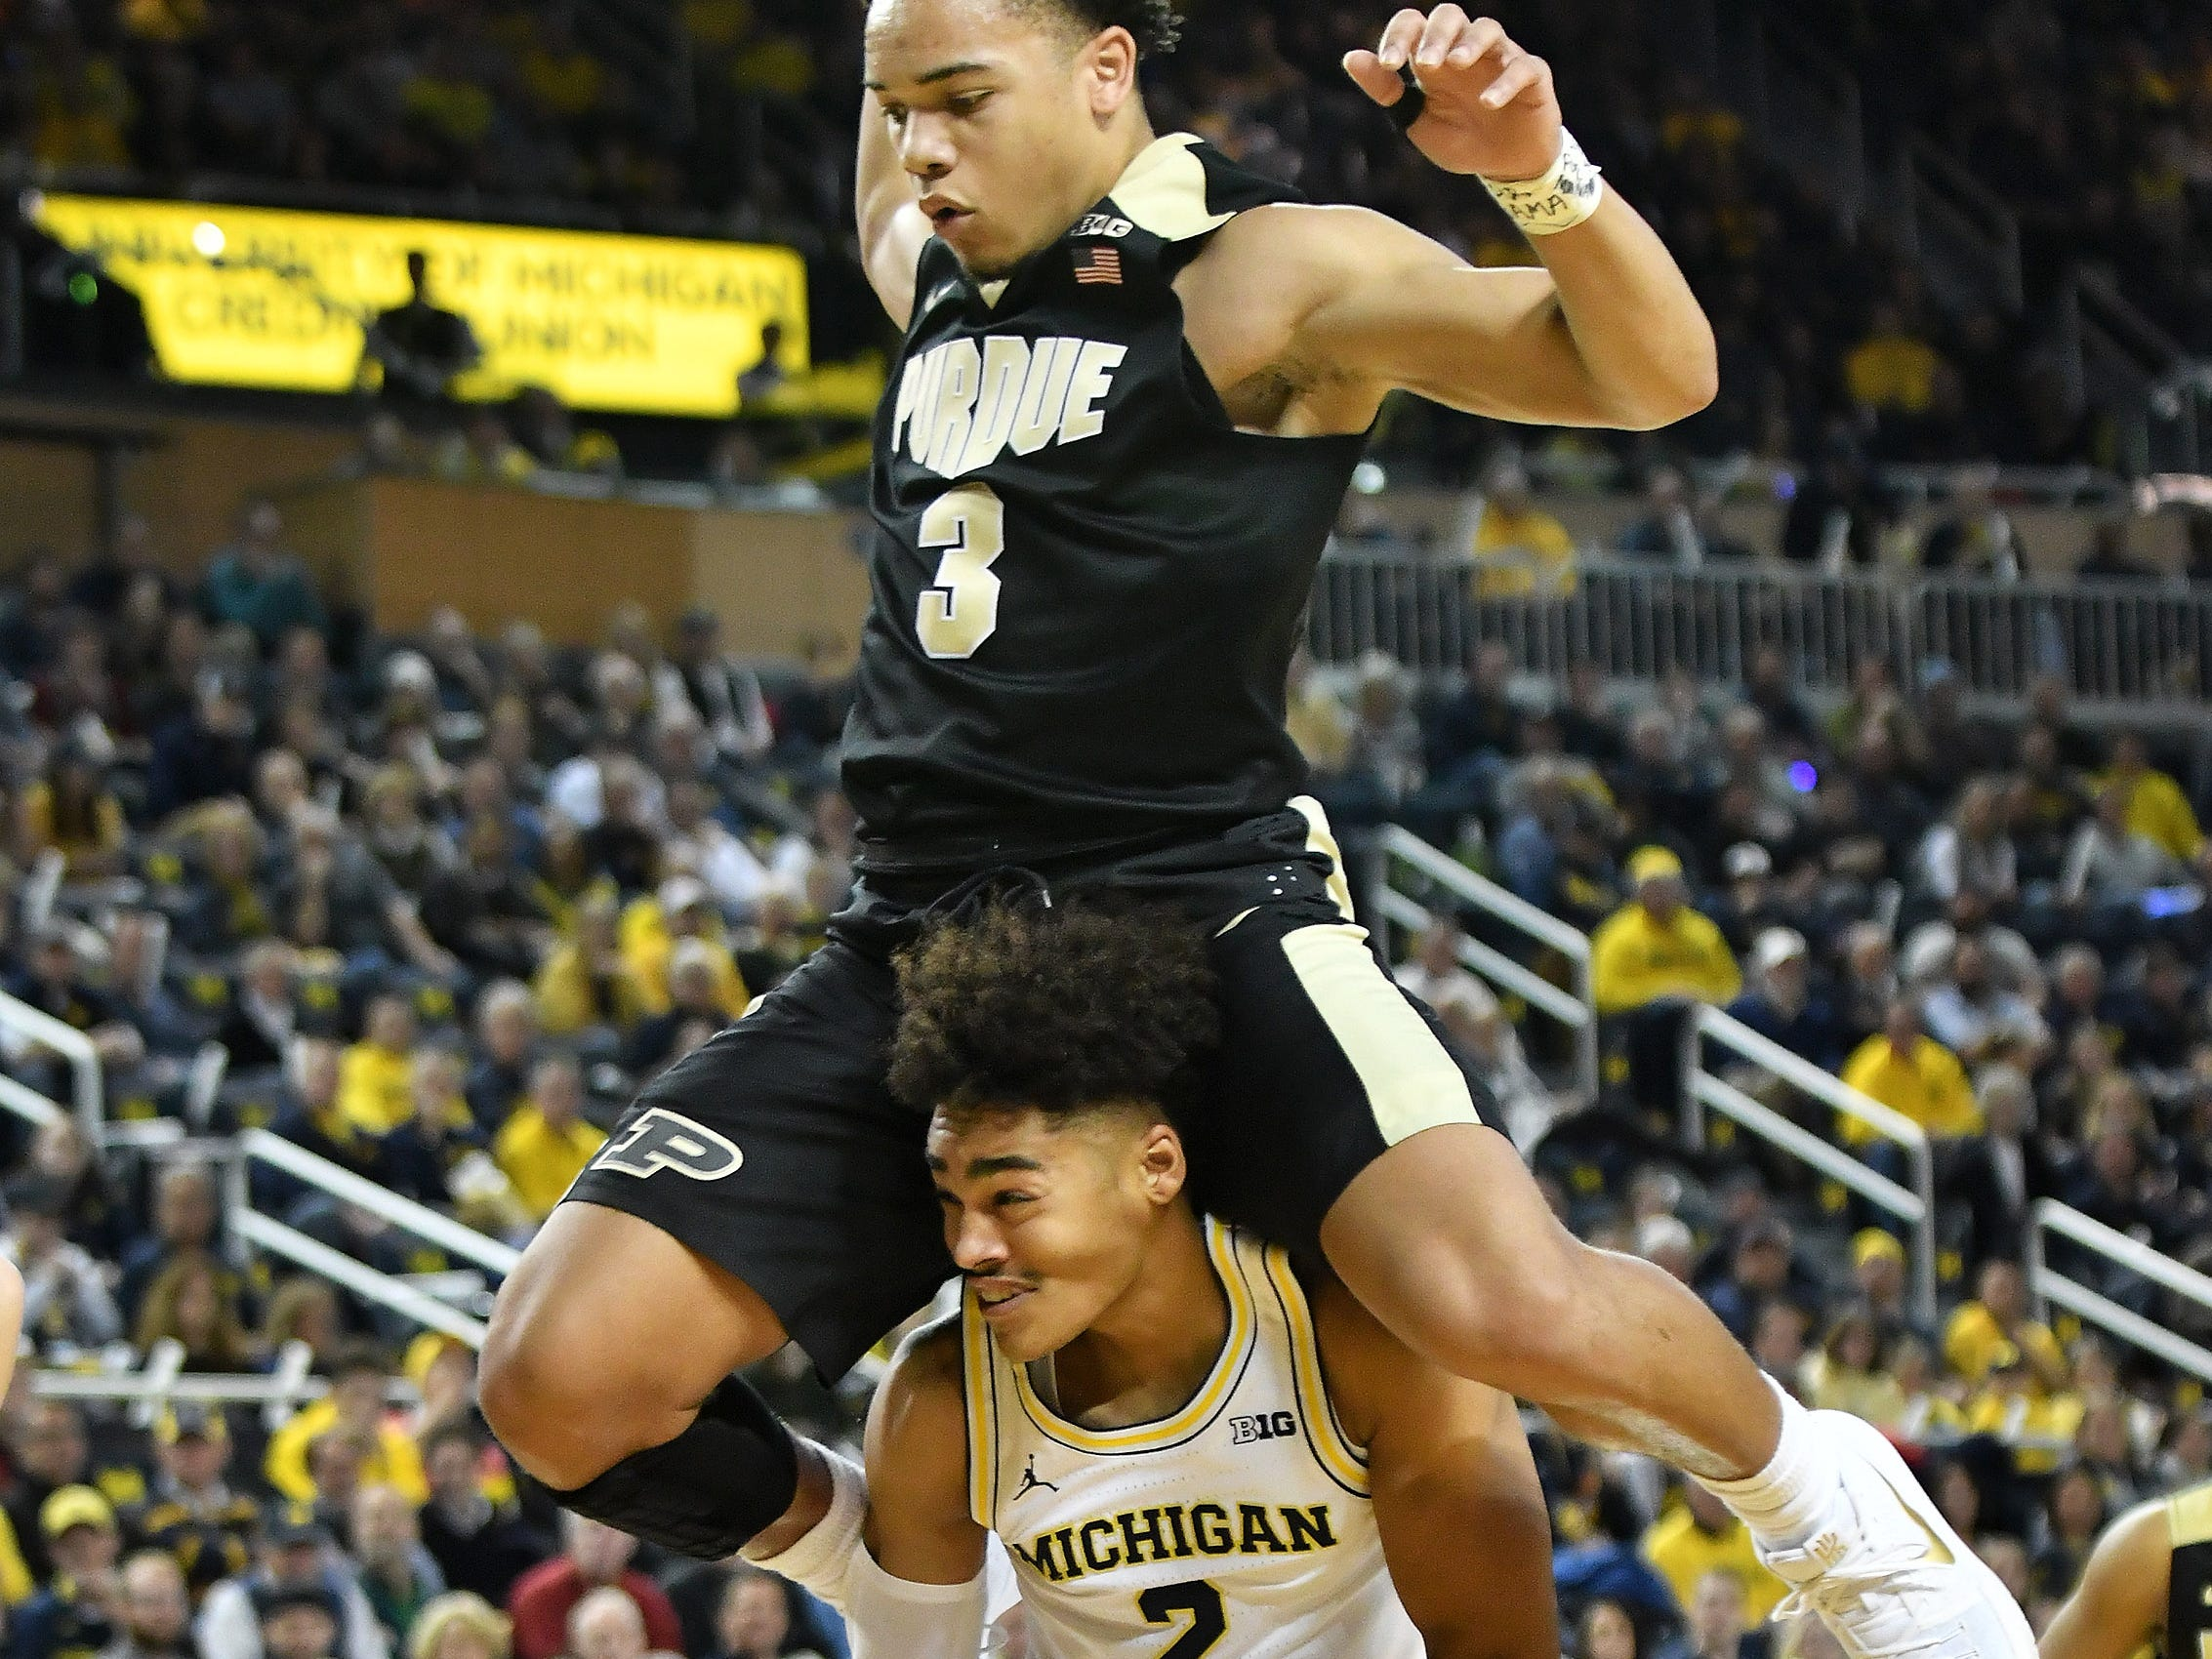 Purdue guard Carsen Edwards (3) goes flying over Michigan guard Jordan Poole (2) during a game at Crisler Center in Ann Arbor, Michigan. on Jan. 9, 2018. Michigan had a spectacular 2017-18 season, winning the Big Ten tournament and advancing the NCAA tournament final before losing to champion Villanova.